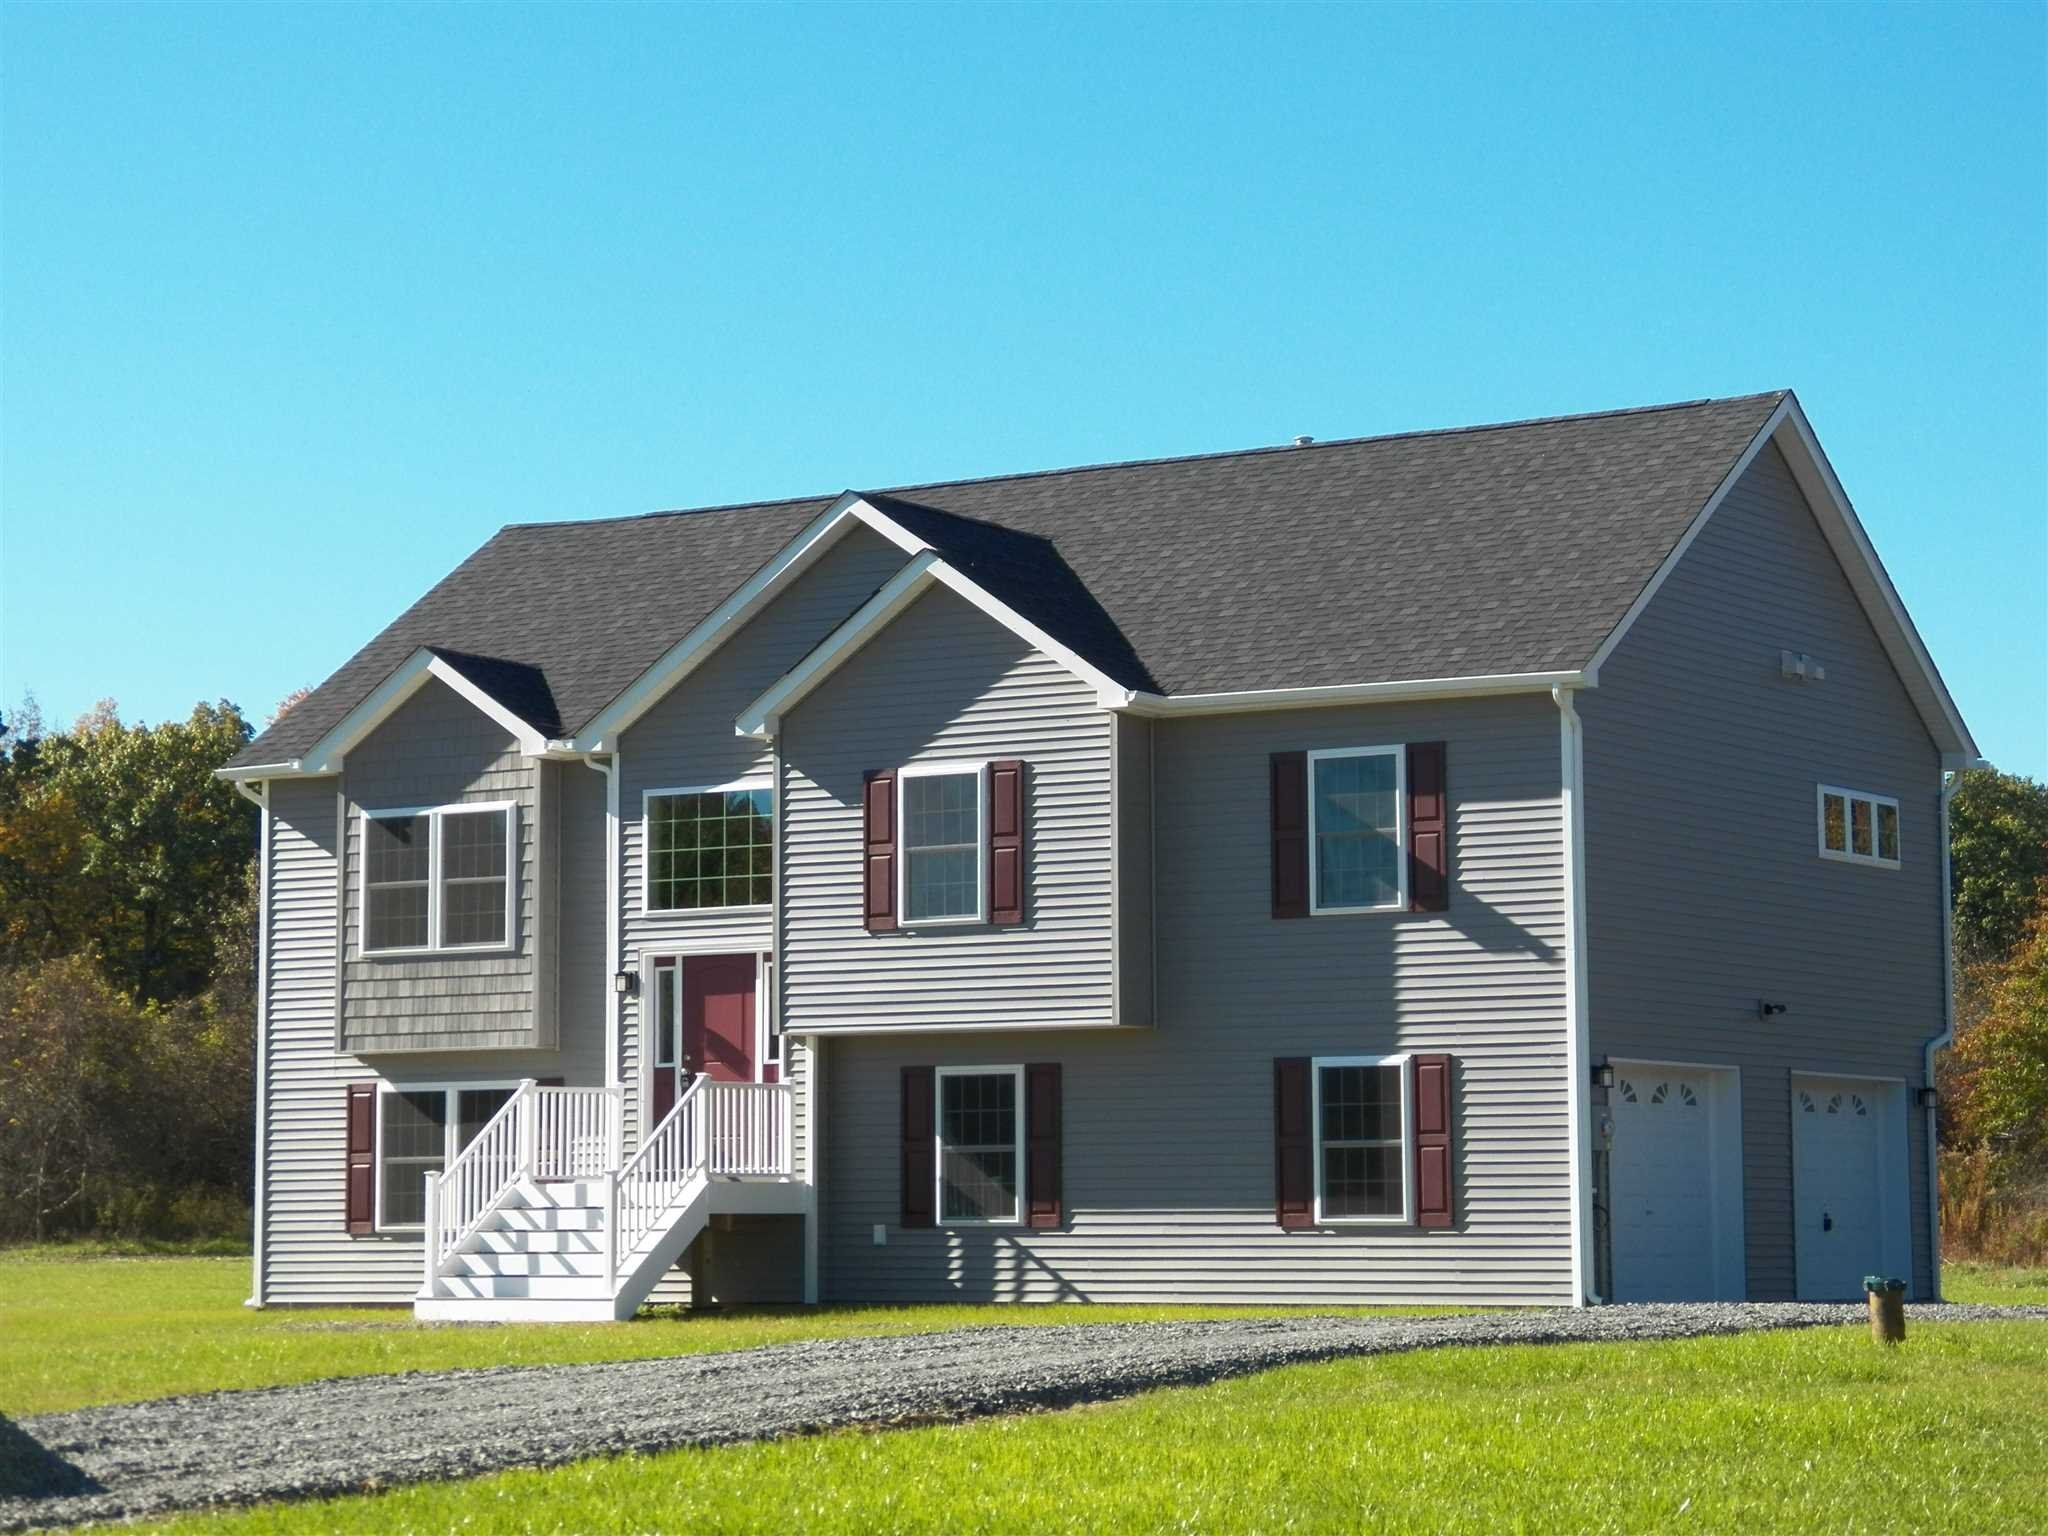 Single Family Home for Sale at 6 FALCON Drive 6 FALCON Drive Highland, New York 12528 United States